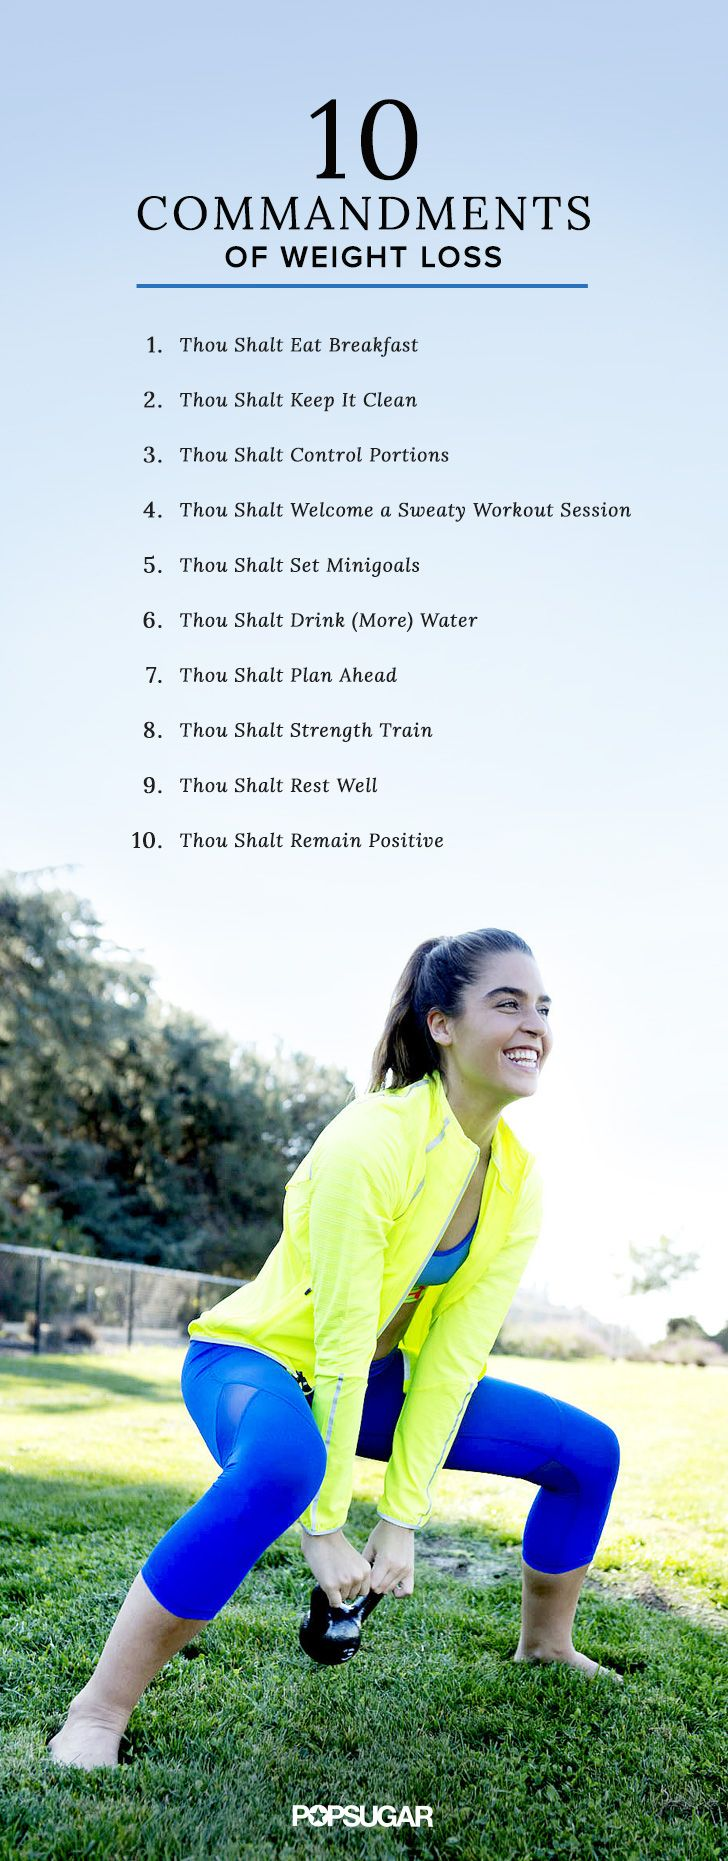 Follow these 10 commandments and we promise the weight will start falling off!